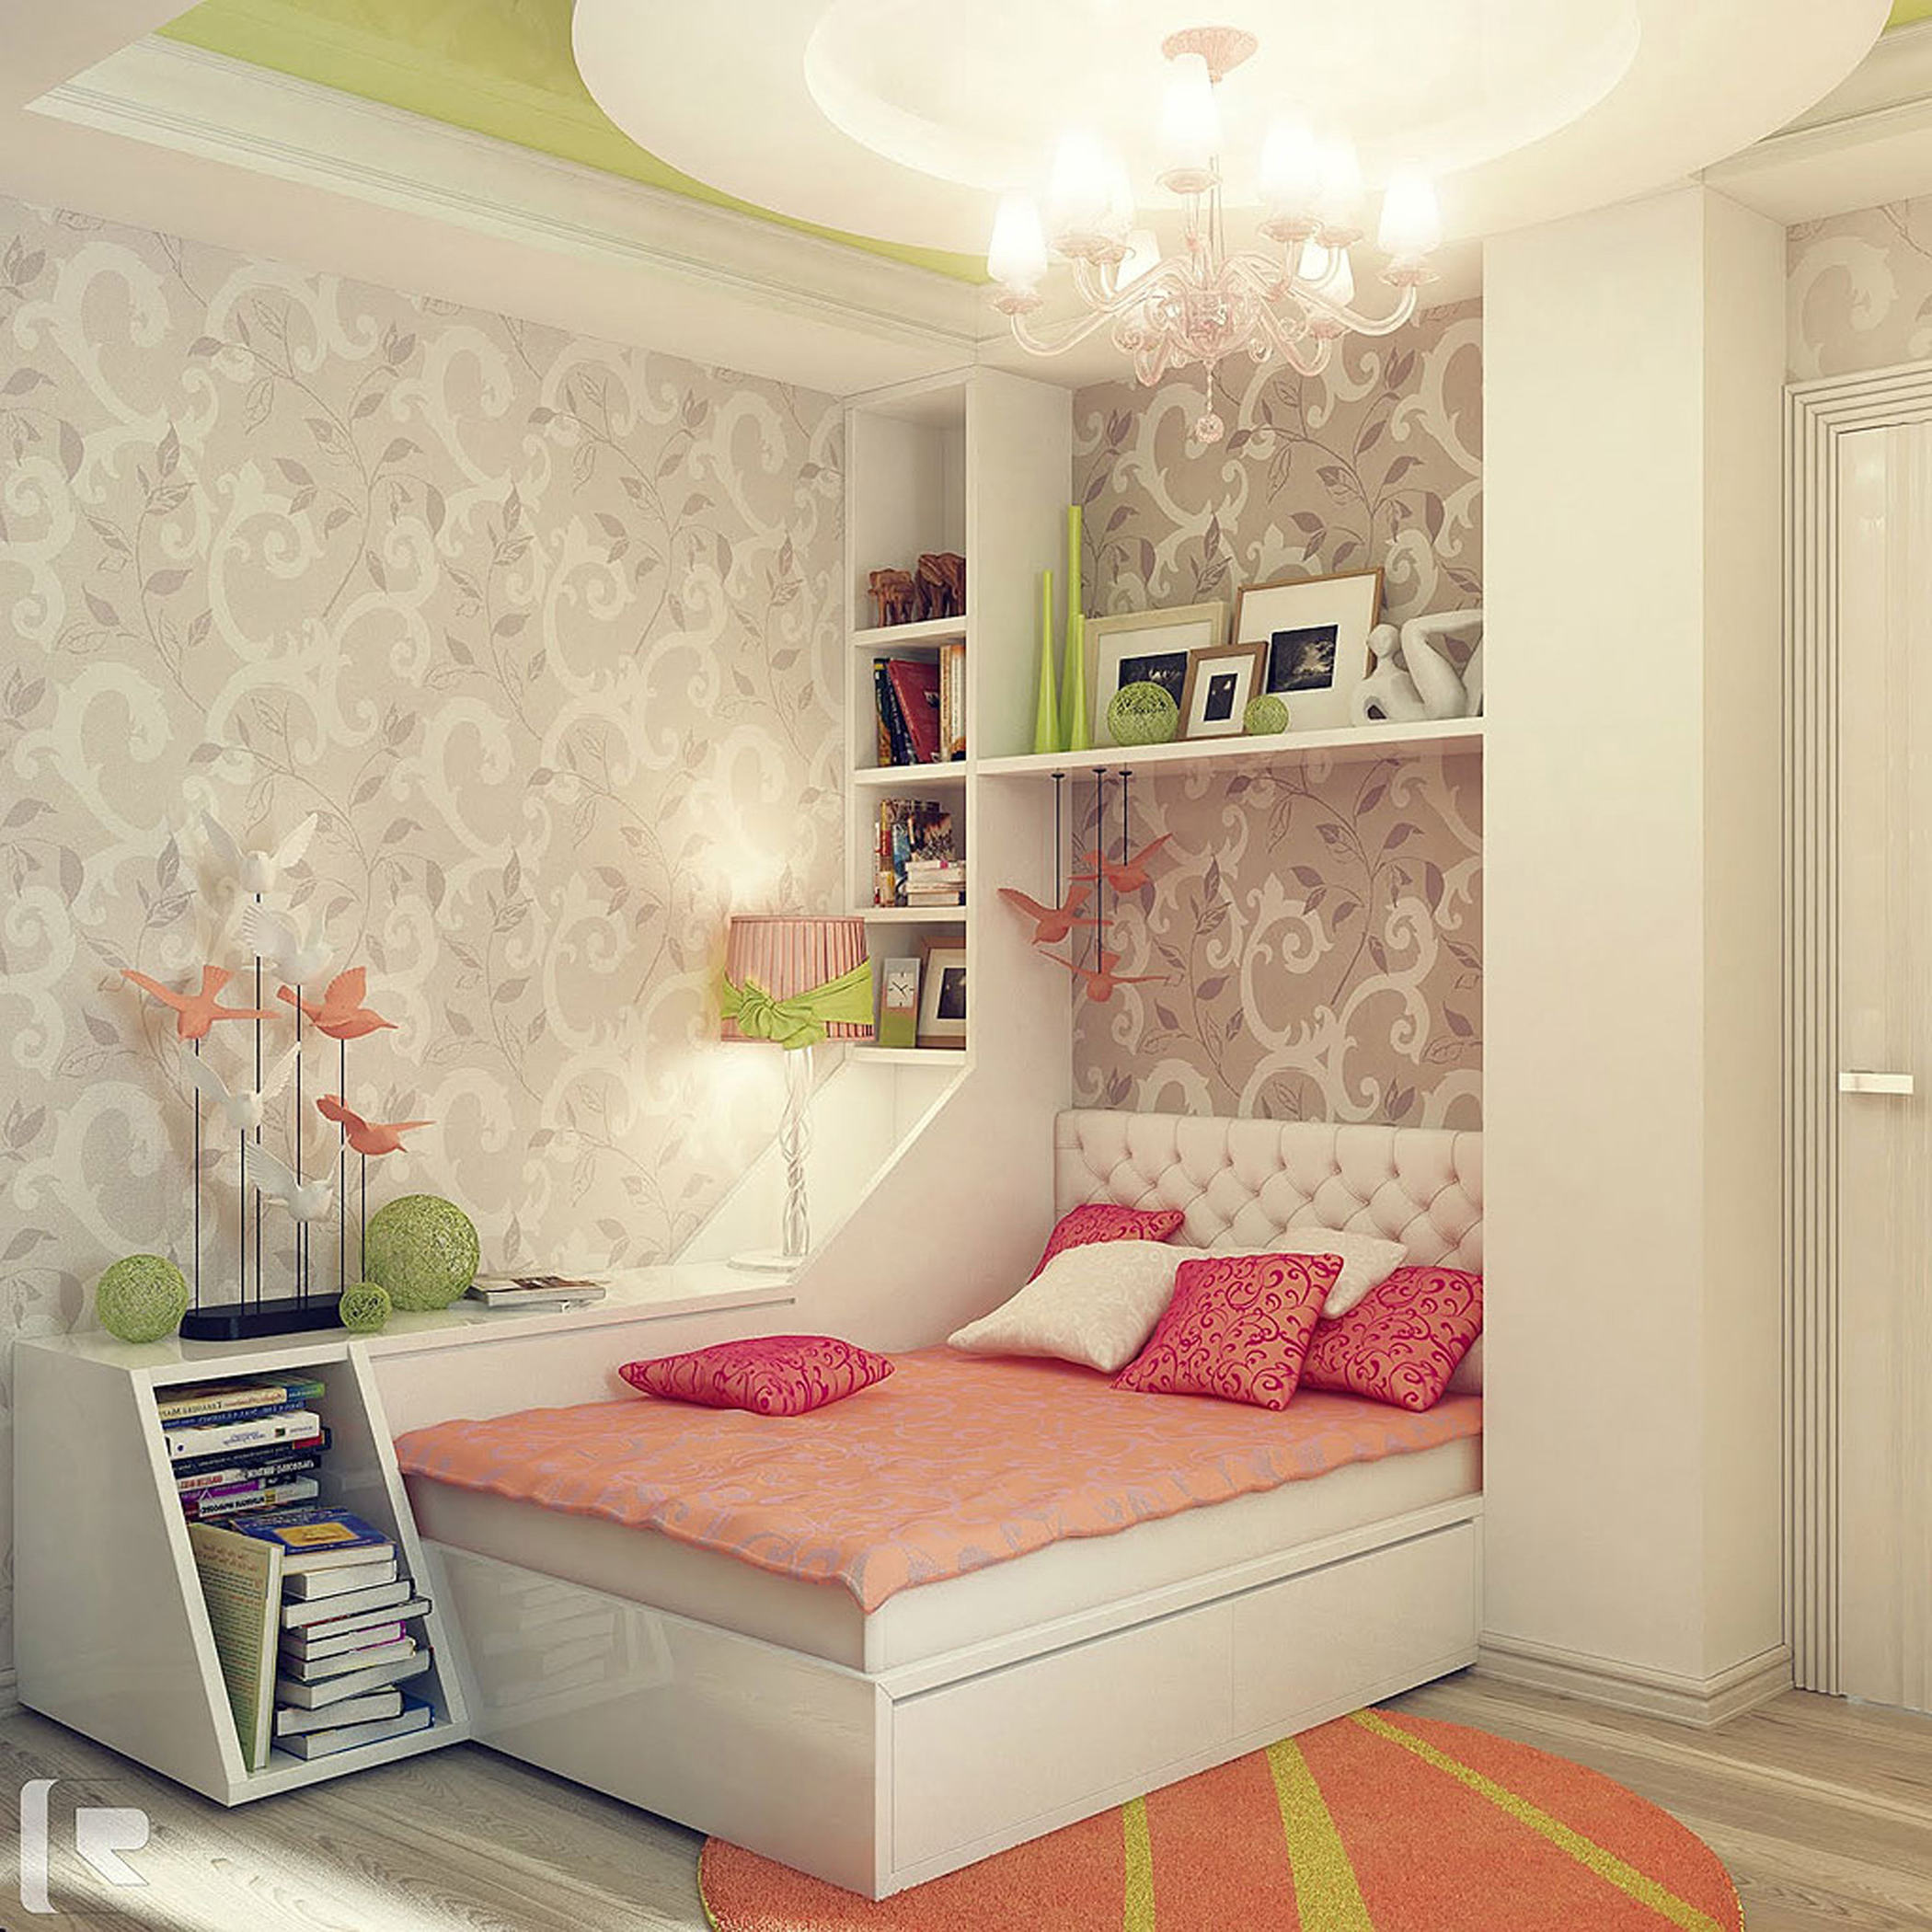 Minimalist Girls Design With White Bed Frame With Pink And White Pillows And Gray Wallpaper With White Open Shelf Along With White Chandelier Cool Design Bedroom Ideas For Girls Bedroom (Image 18 of 25)